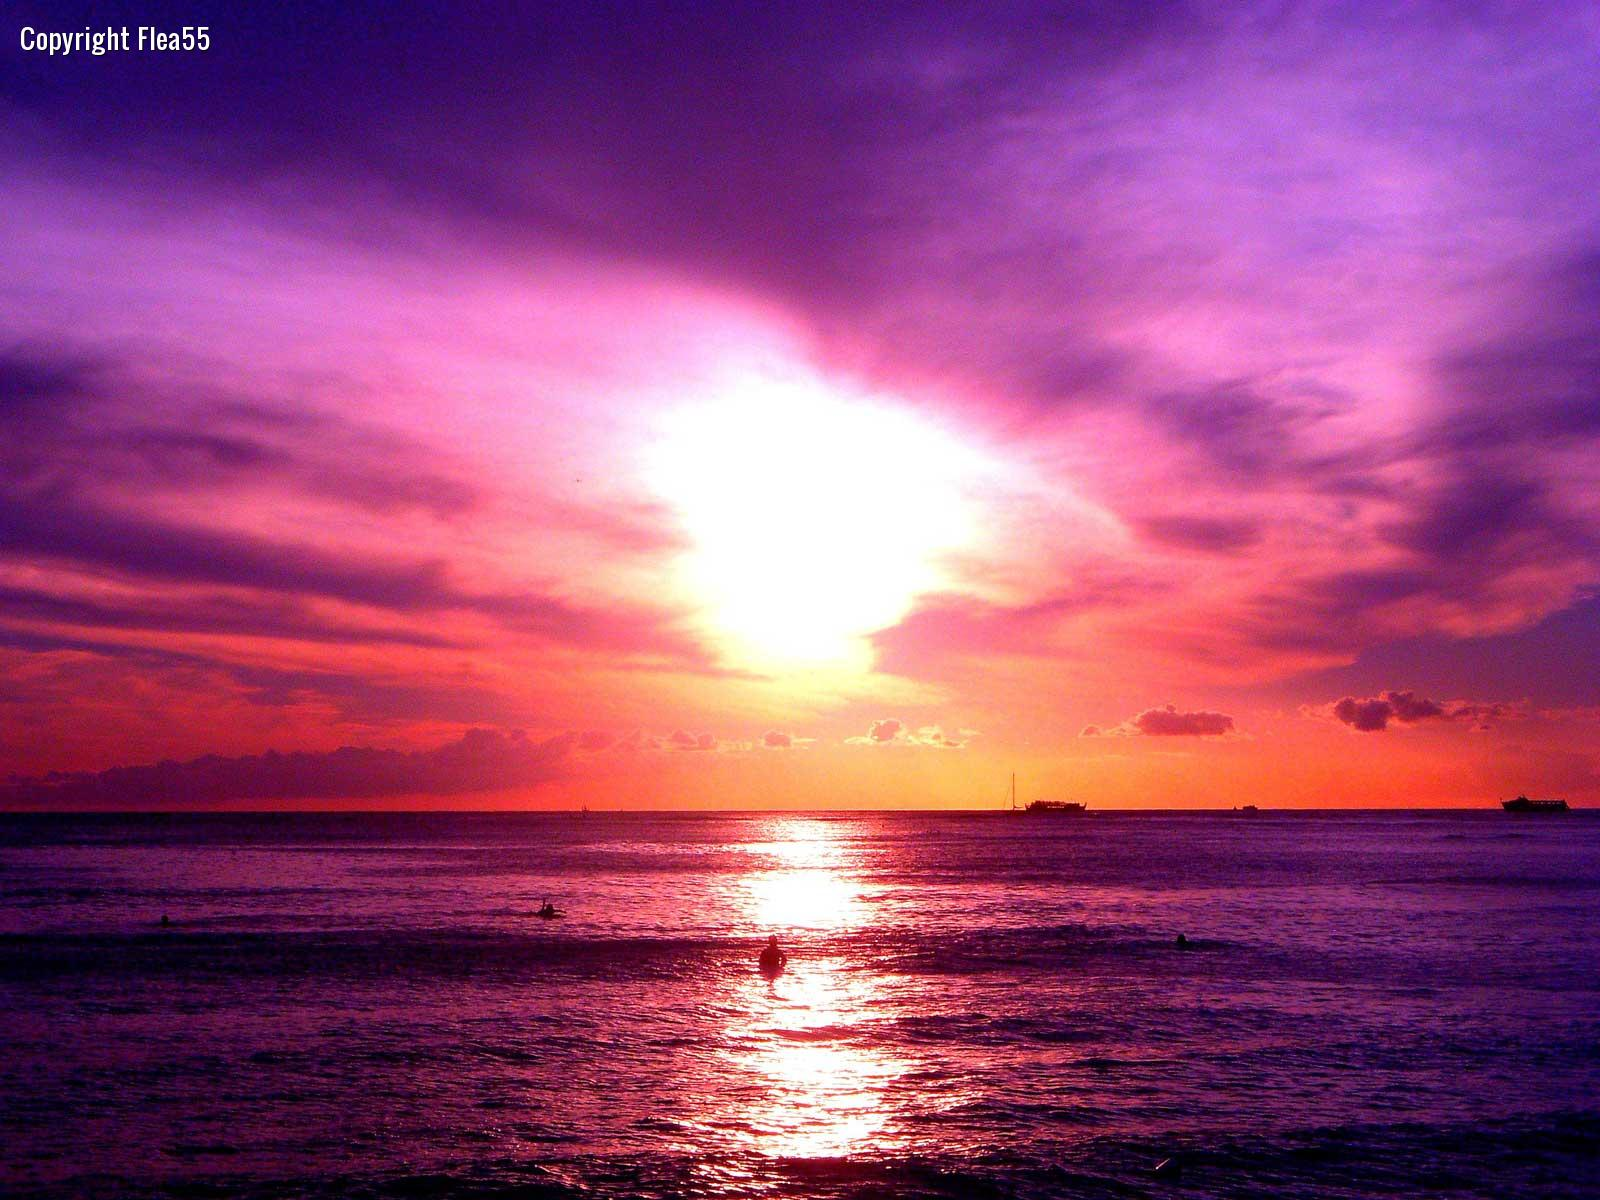 Purple Sunset On The Beach 8741 Hd Wallpapers in Beach   Imagescicom 1600x1200